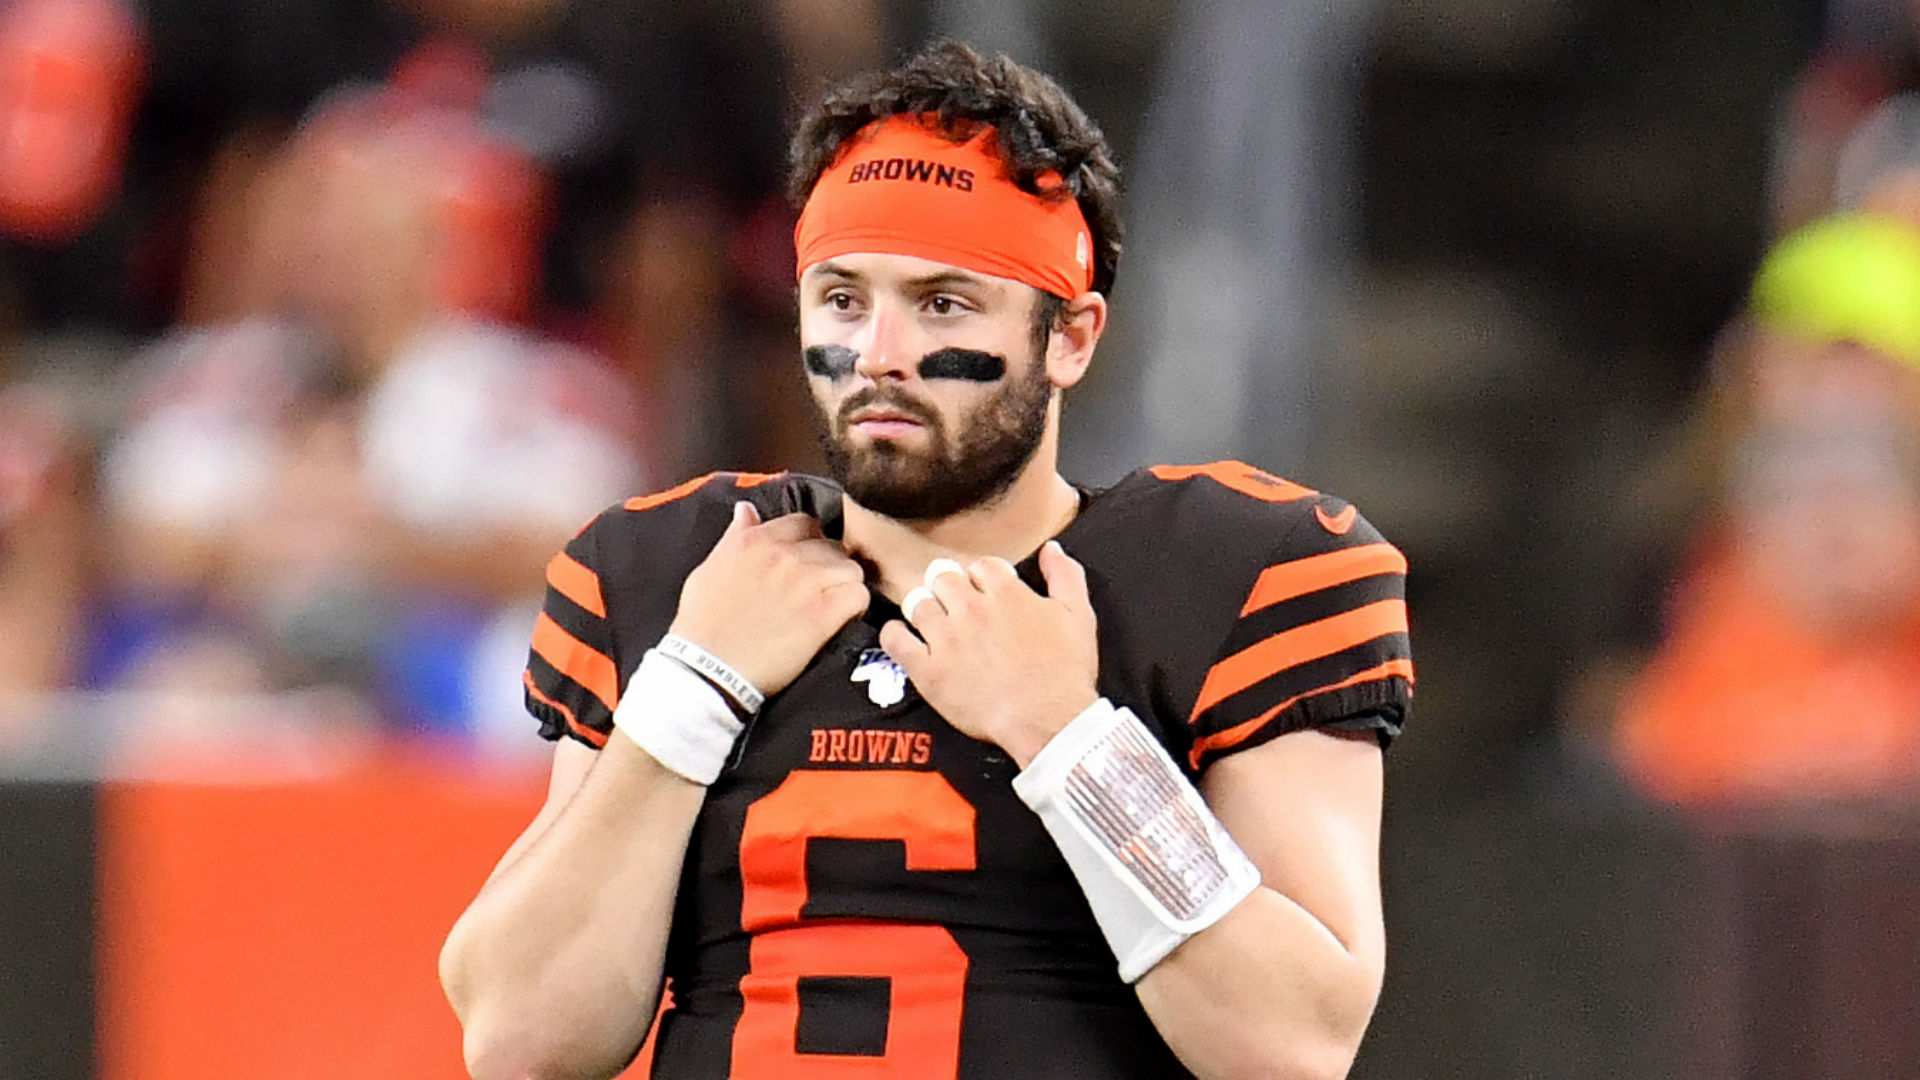 Looking ahead to his third NFL season, Cleveland Browns QB Baker Mayfield will not add any more pressure on himself.